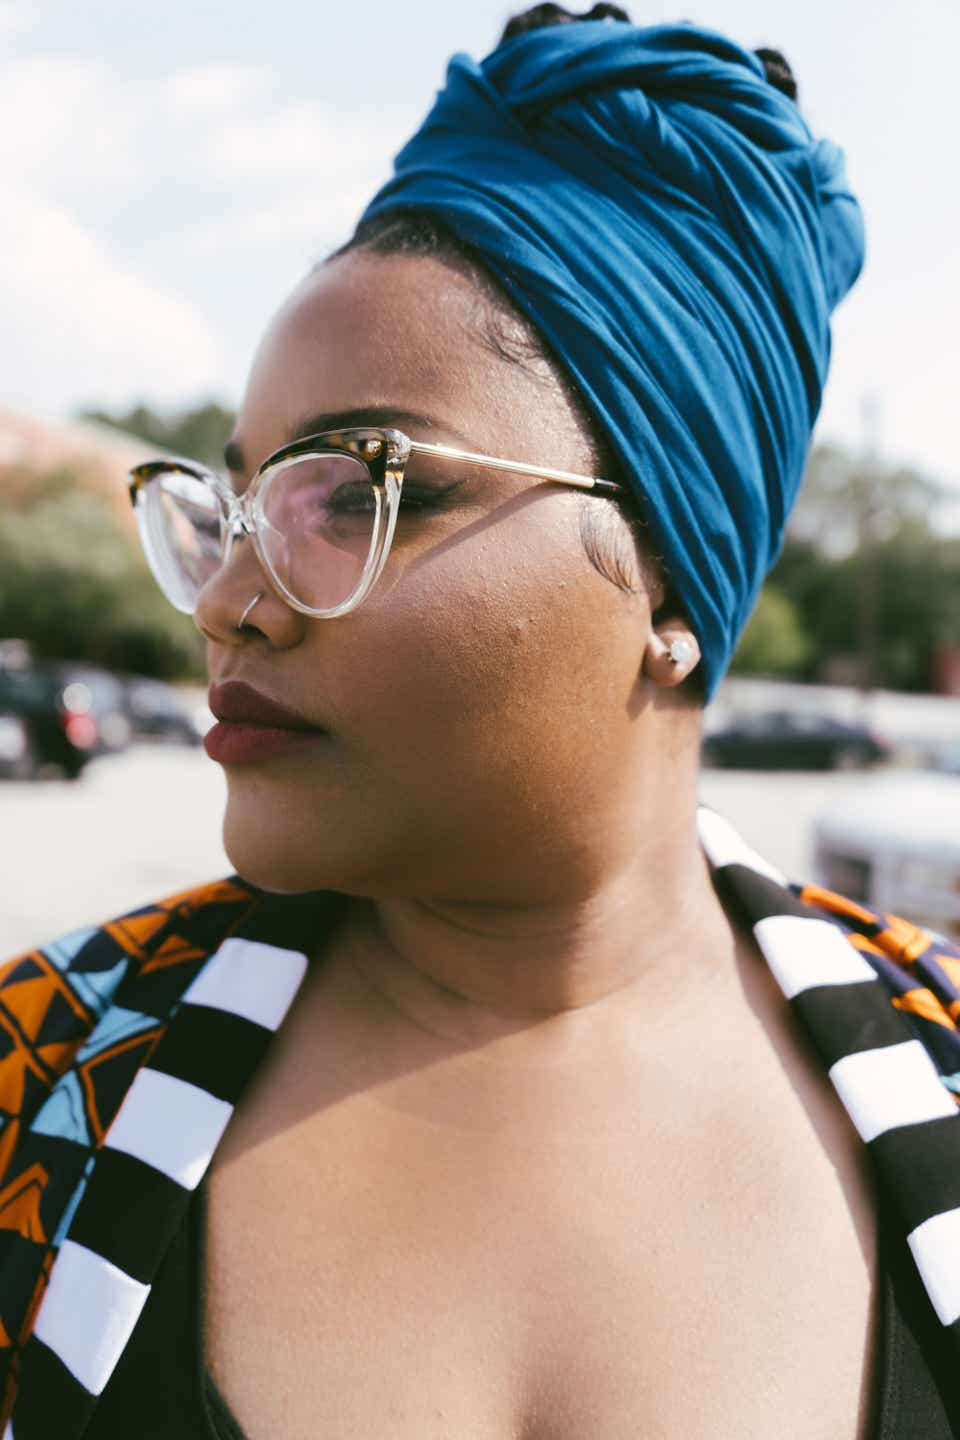 This is a close up shot of Erica's silhouette. She is wearing a blue headwrap, oversized cat-eye glasses, and a cardigan patterned with geometric shapes.